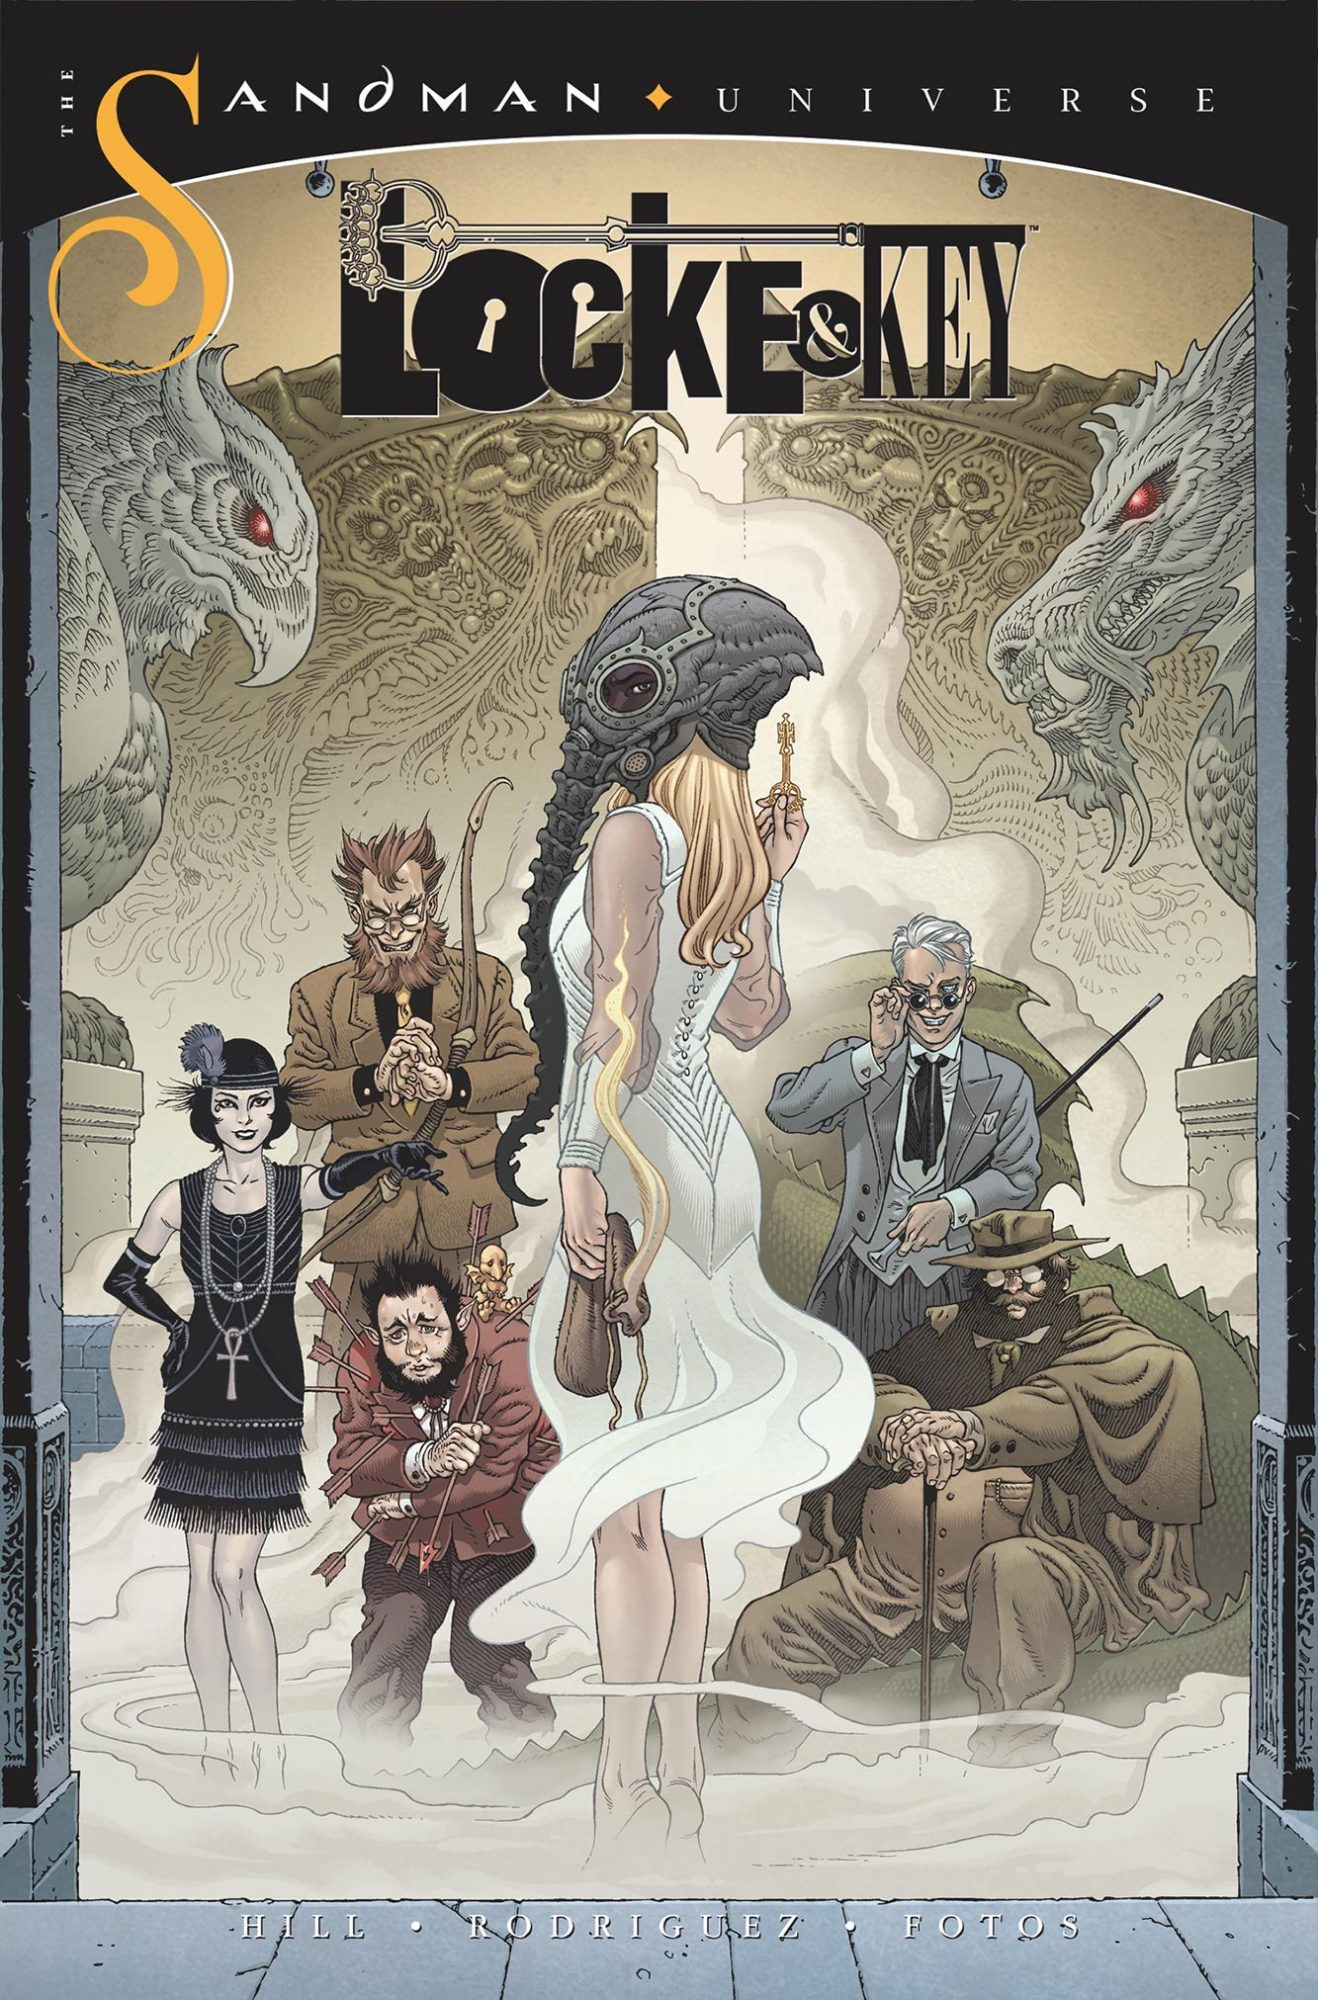 The Sandman/Locke and Key comic crossover